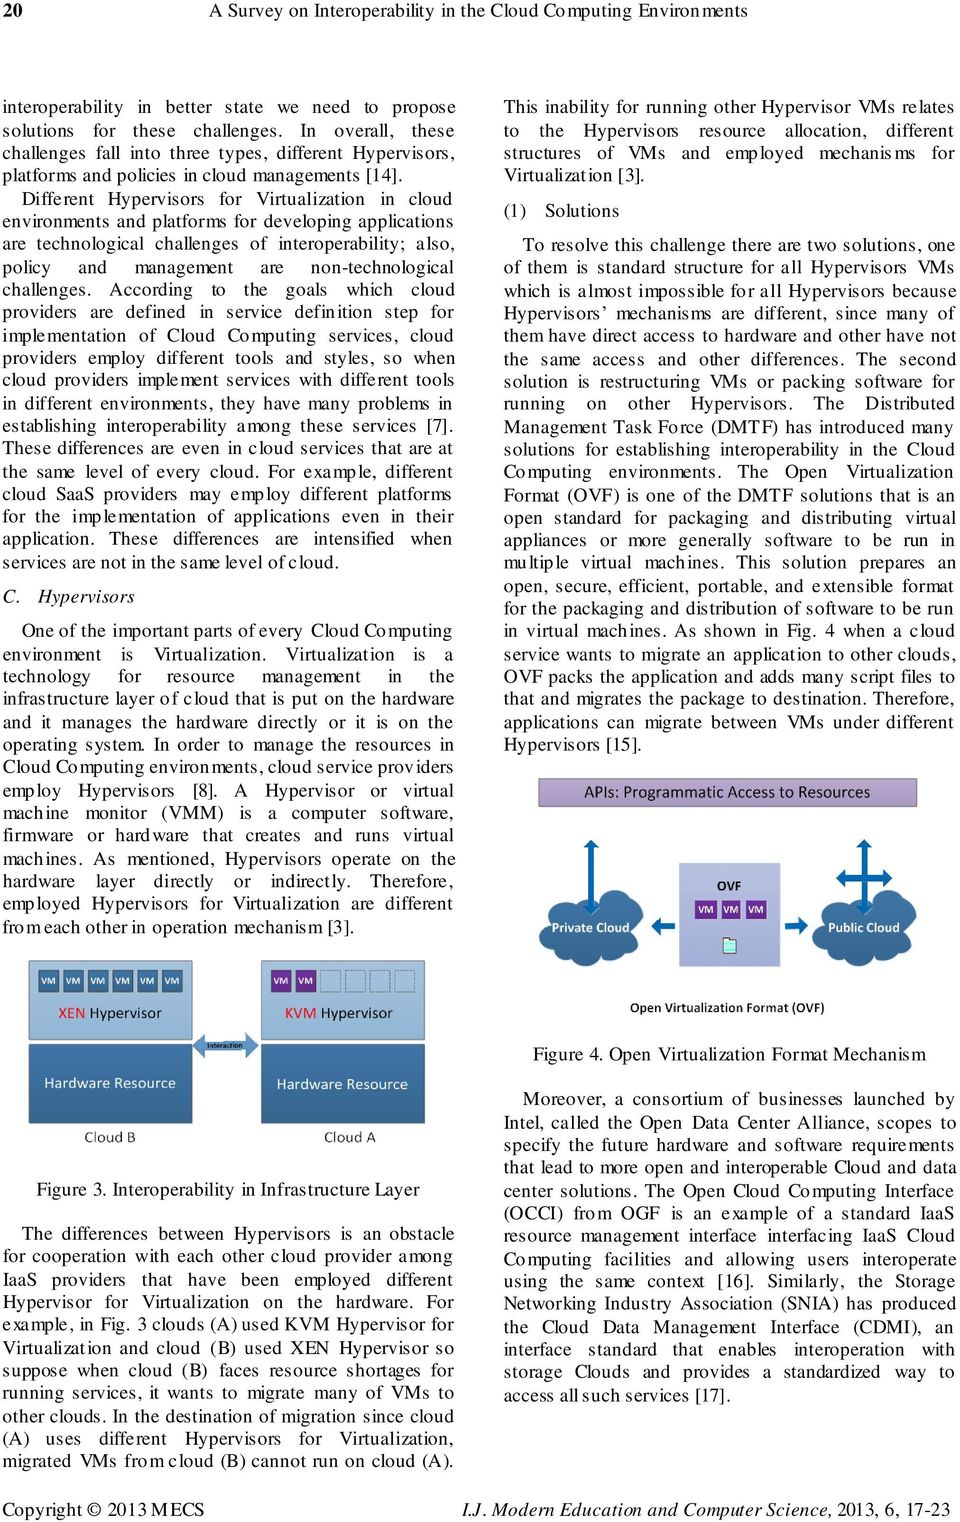 Different Hypervisors for Virtualization in cloud environments and platforms for developing applications are technological challenges of interoperability; also, policy and management are